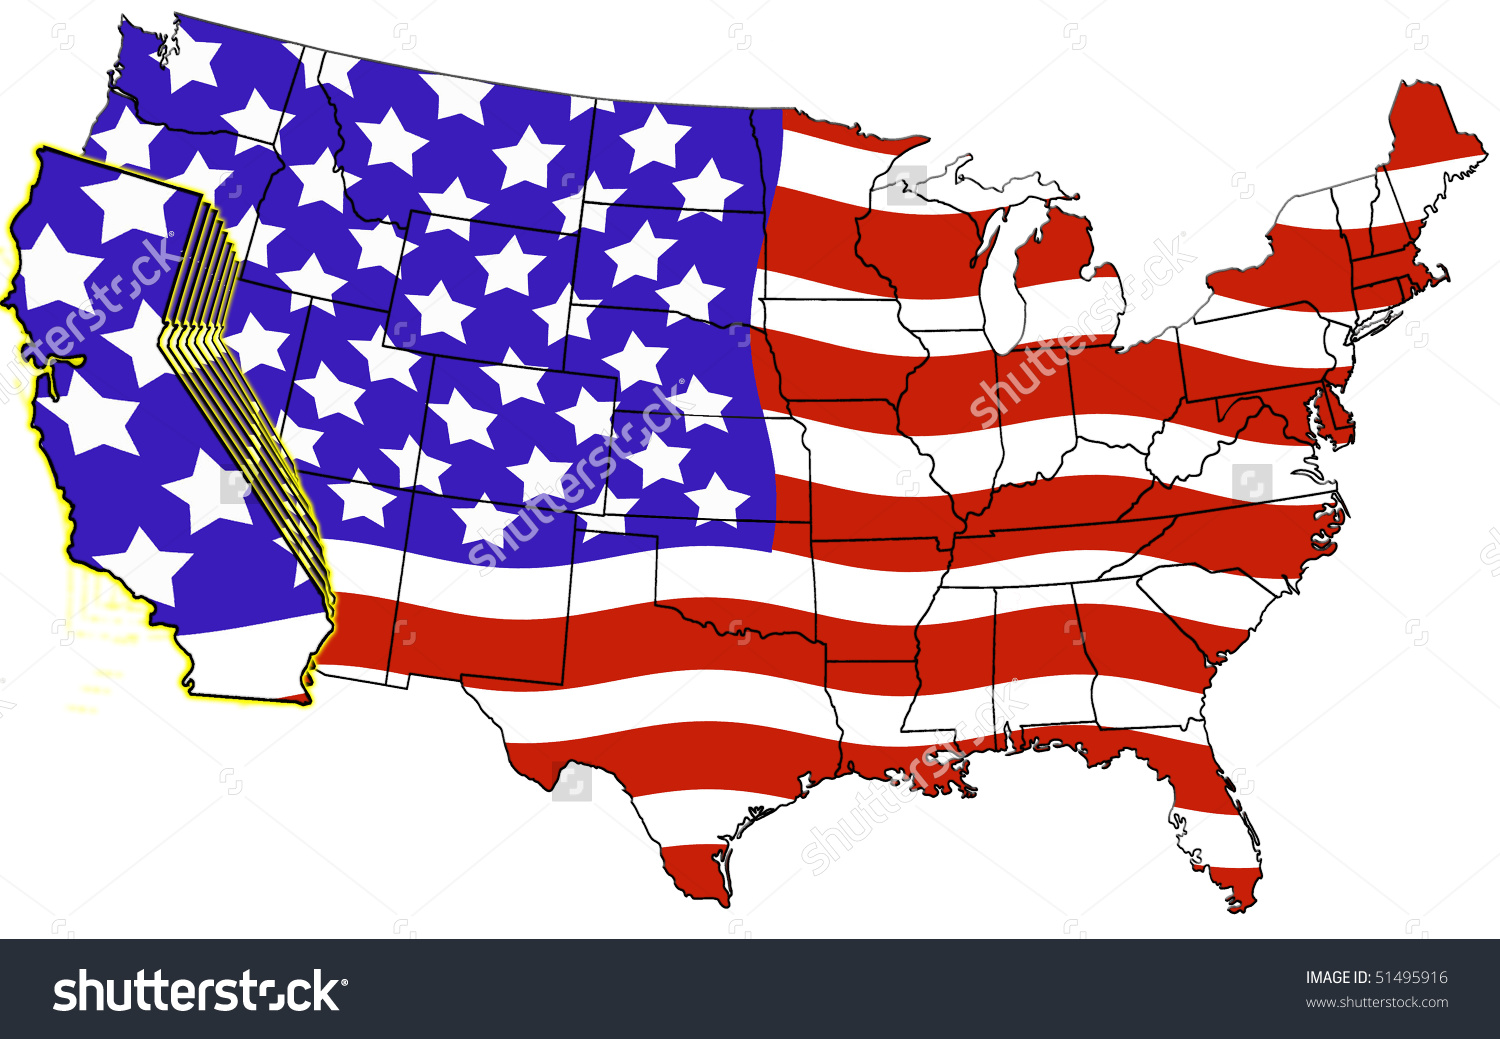 California on a us map clipart. Usa highlighted flag color